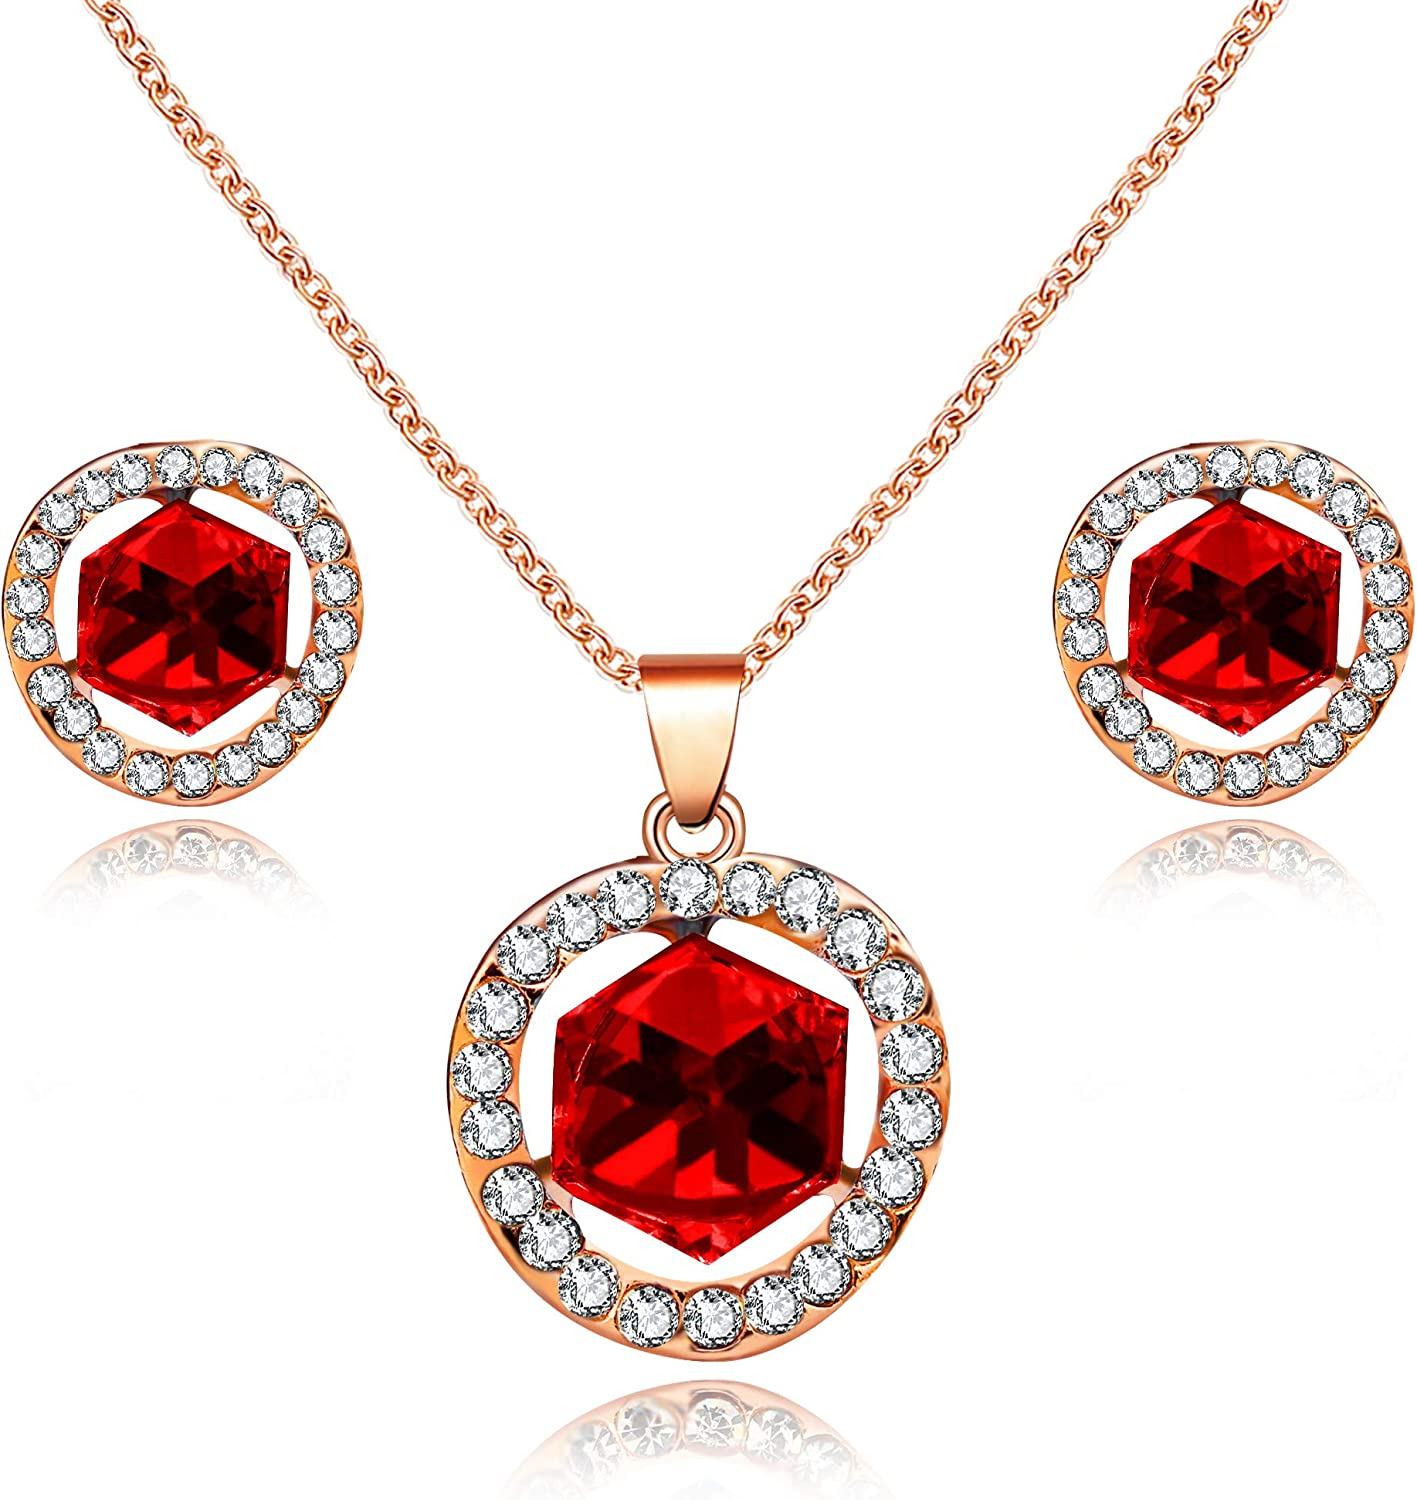 Uloveido Women's Rose Gold Plated Square Cube Crystal Necklace and Stud Earrings Set Wedding Party Jewelry Set for Girl Y453 (Red, Blue)